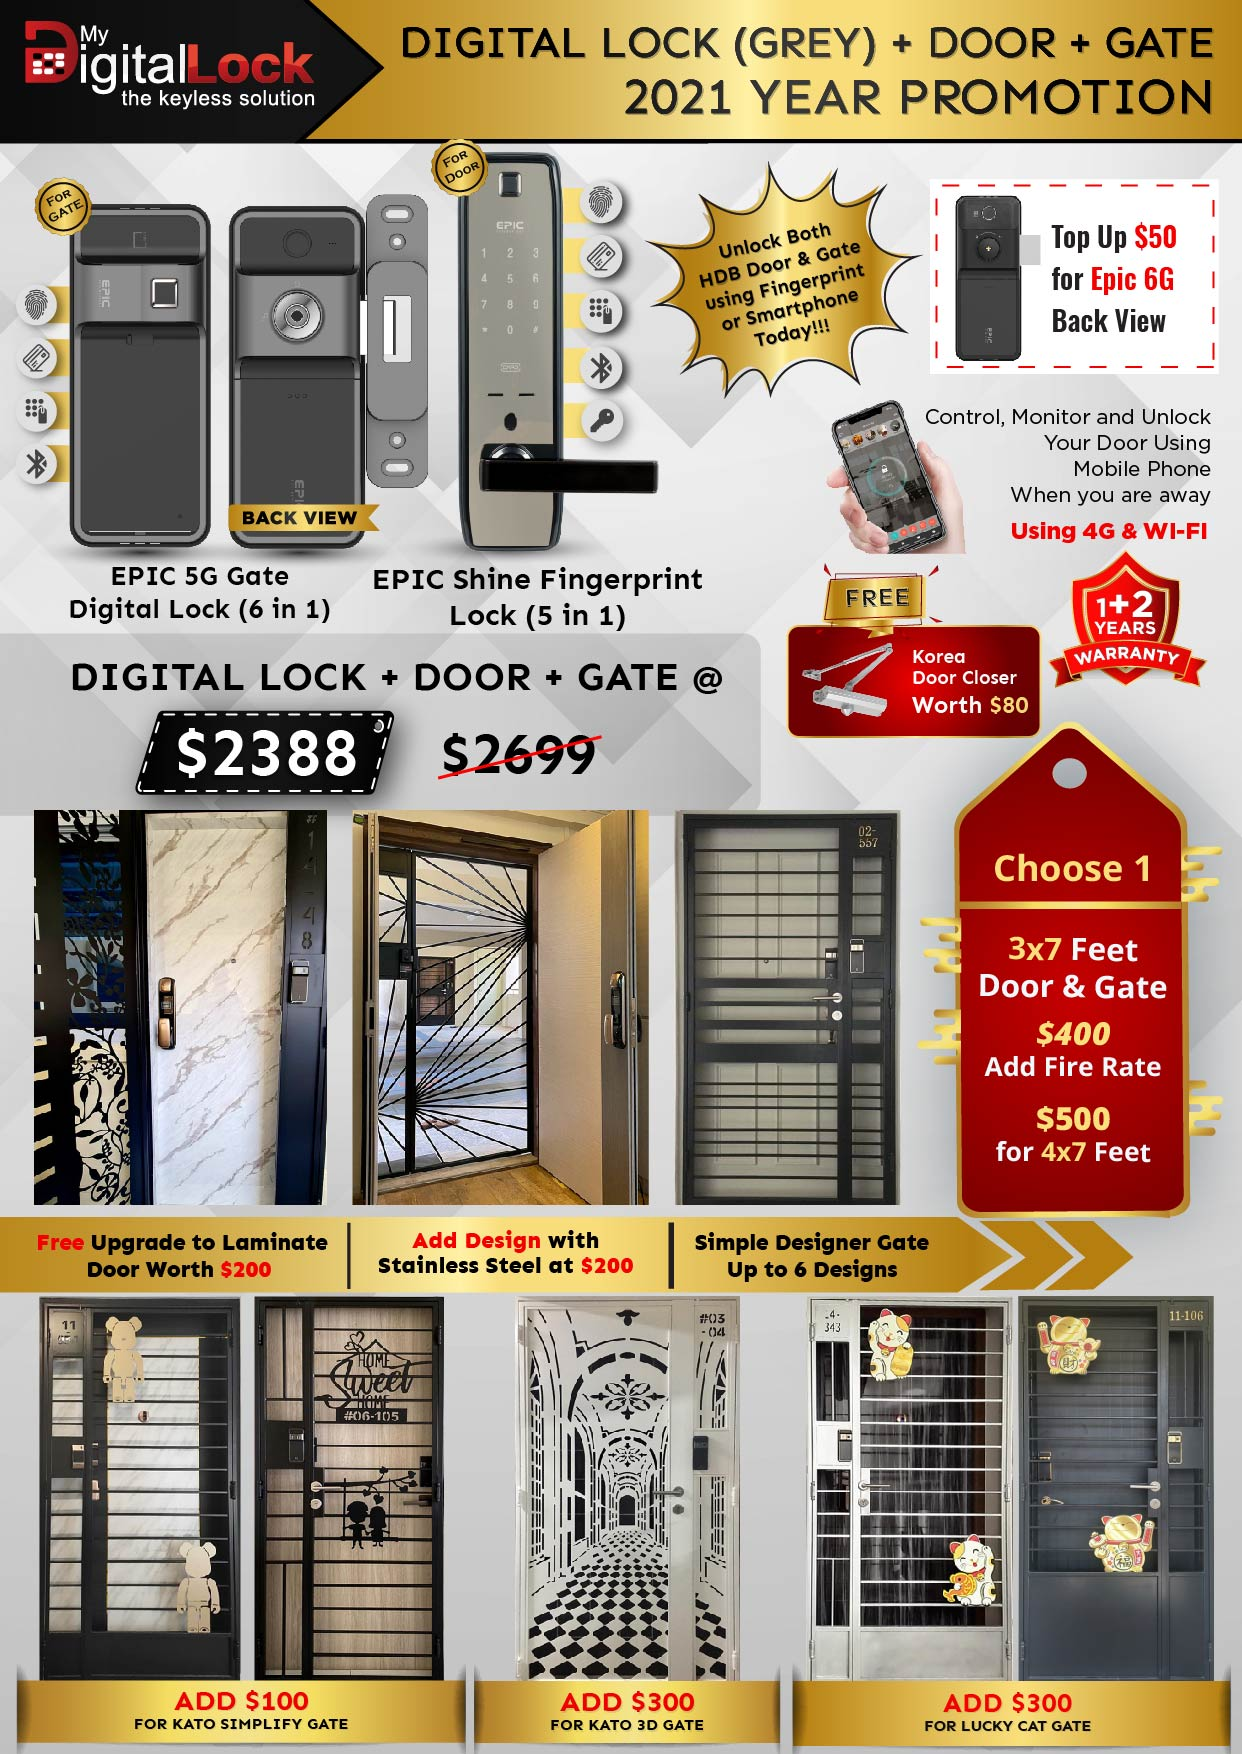 Digital-Lock-Grey-and-Door-and-Gate-Banner-2021